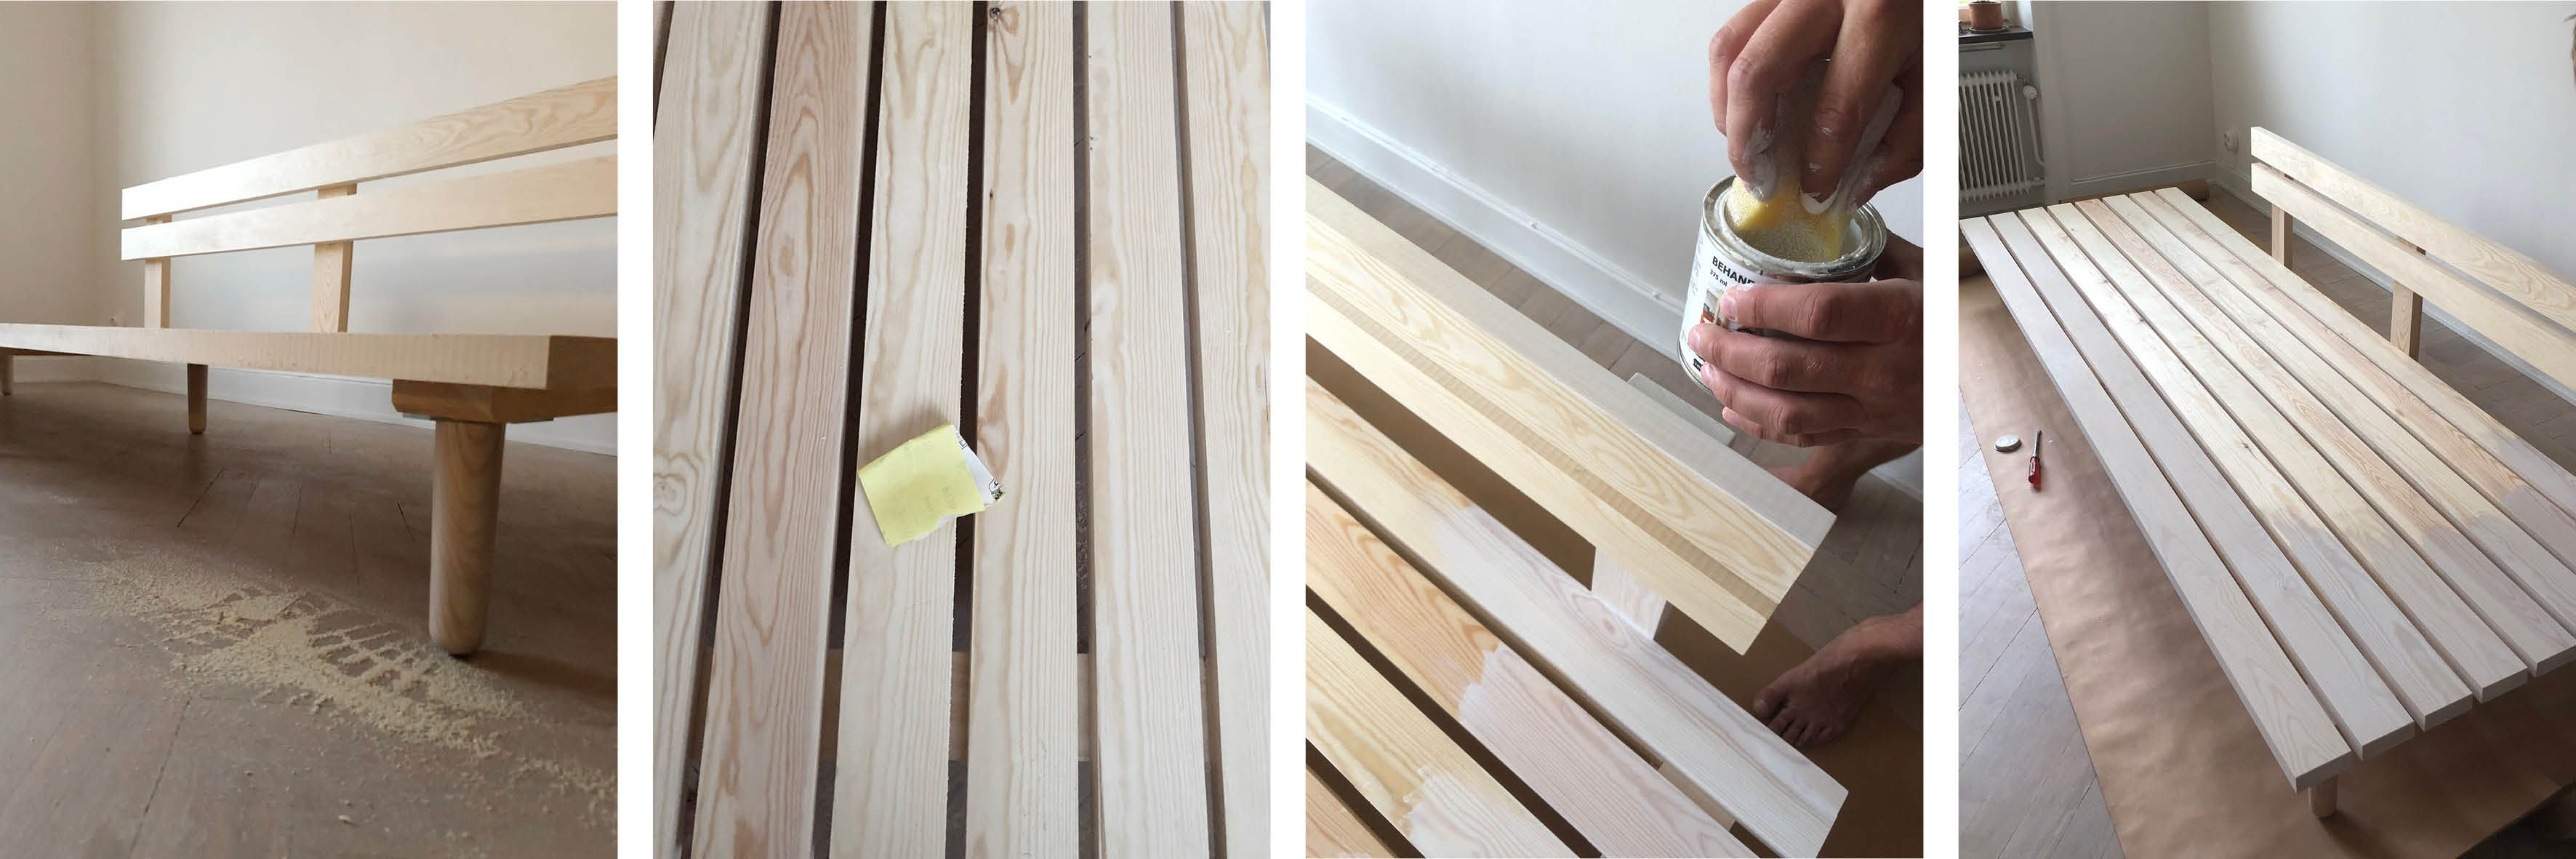 Our Community – The place to check out inspiring IKEA Hacks. – Prettypegs – Sofa Daybed Hack!